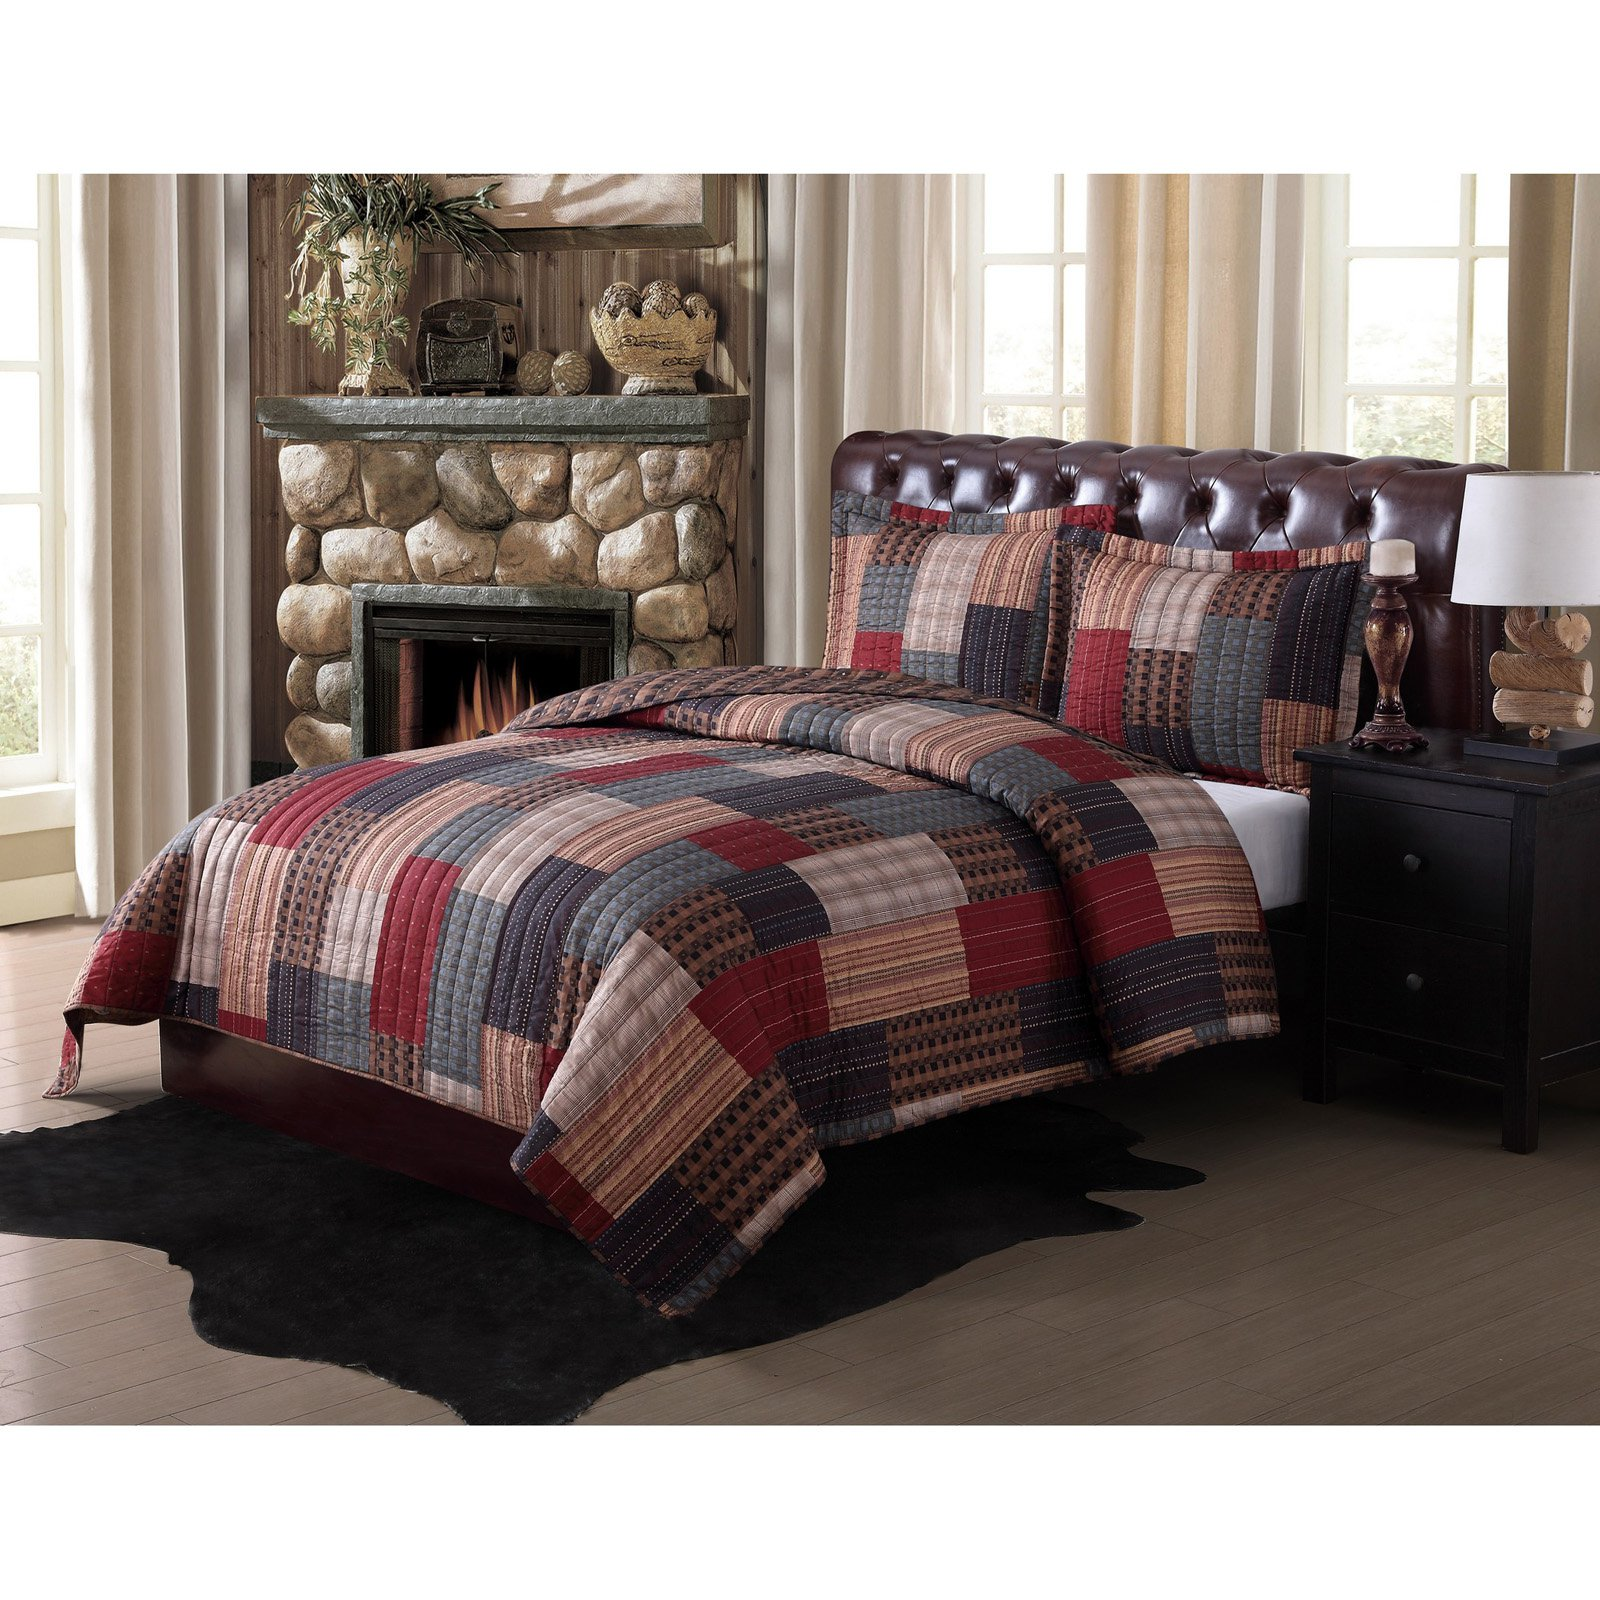 Remington Gunnison Rotary Bedding Quilt Set by PEM AMERICA